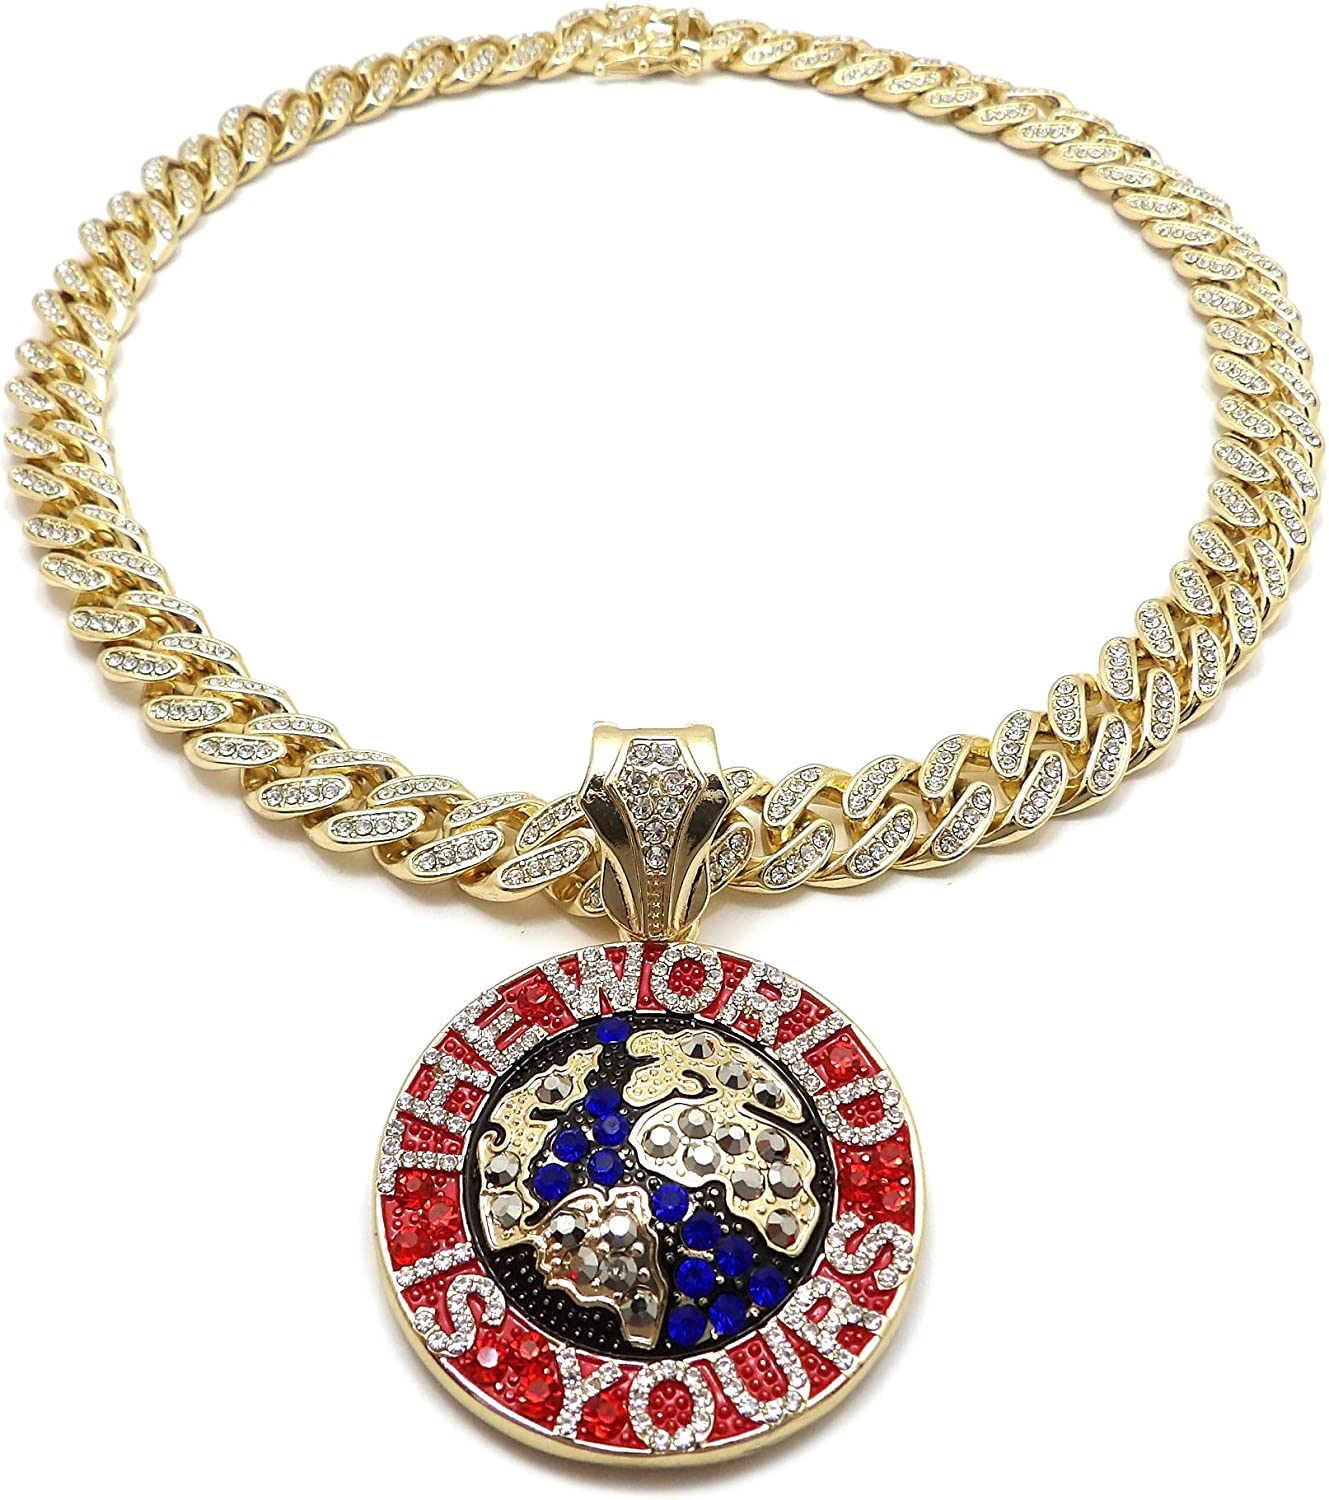 BLINGFACTORY Hip Hop The World is Yours Pendant & 12mm 18